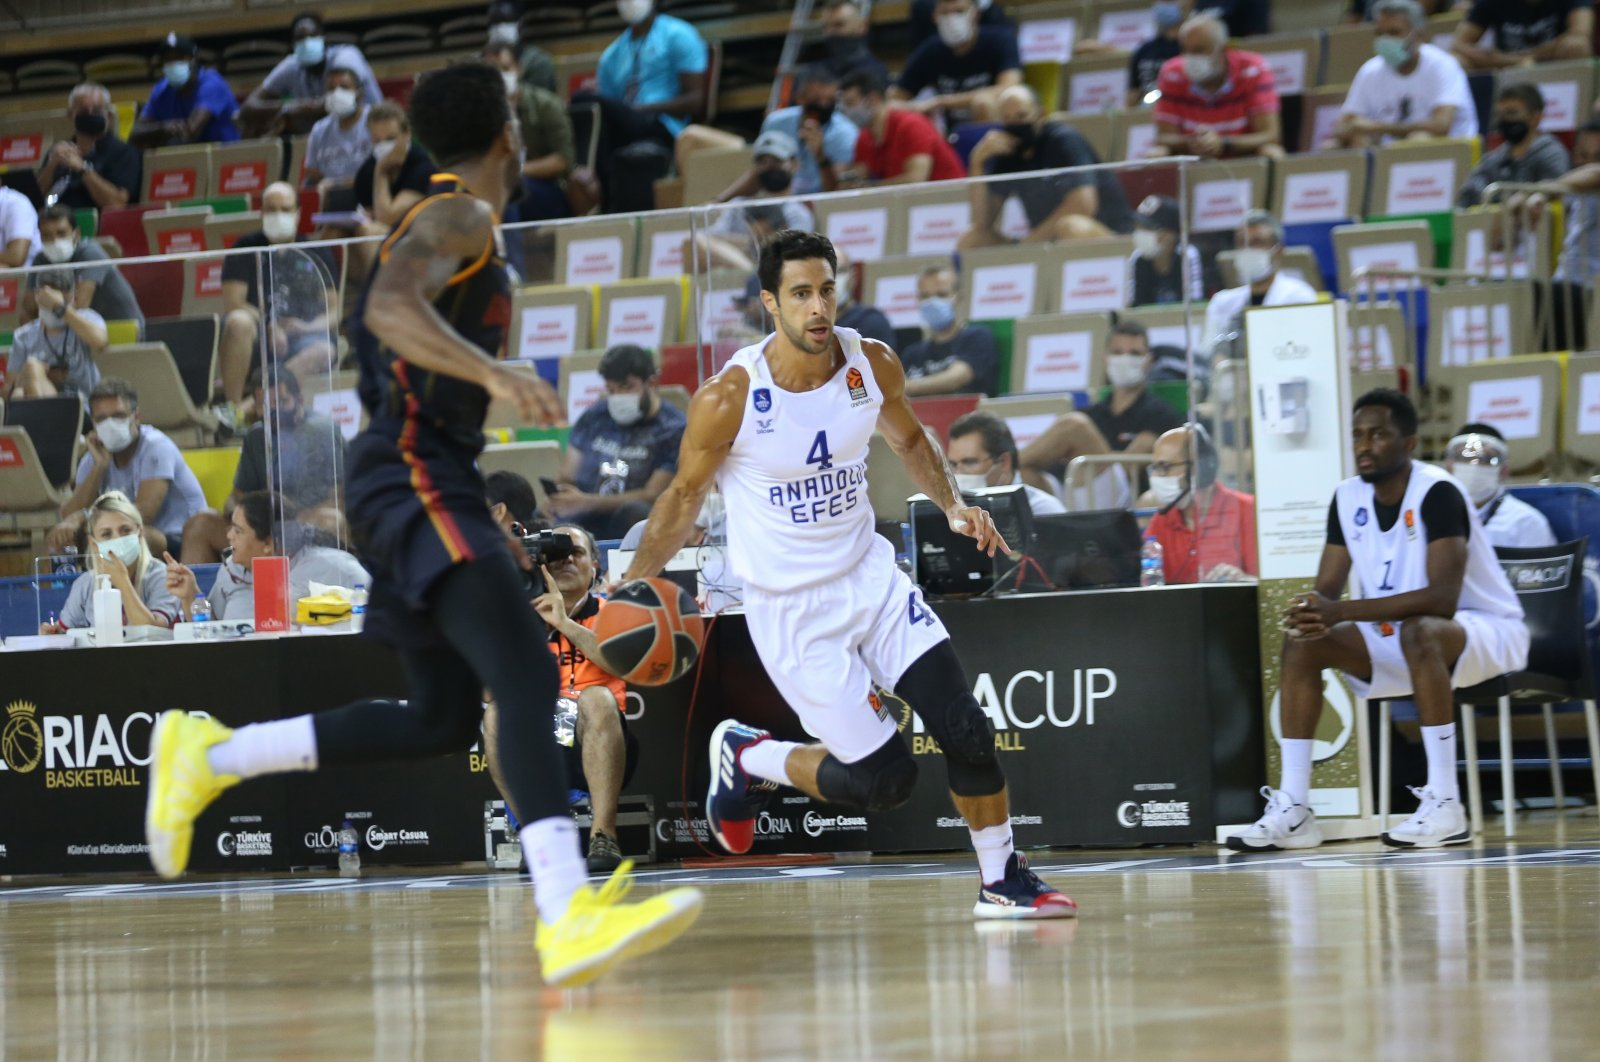 Doğuş Balbay of Anadolu Efes dribbles the ball during a match in Gloria Cup tournament, in Antalya, southern Turkey, Sept. 8, 2020. (AA Photo)